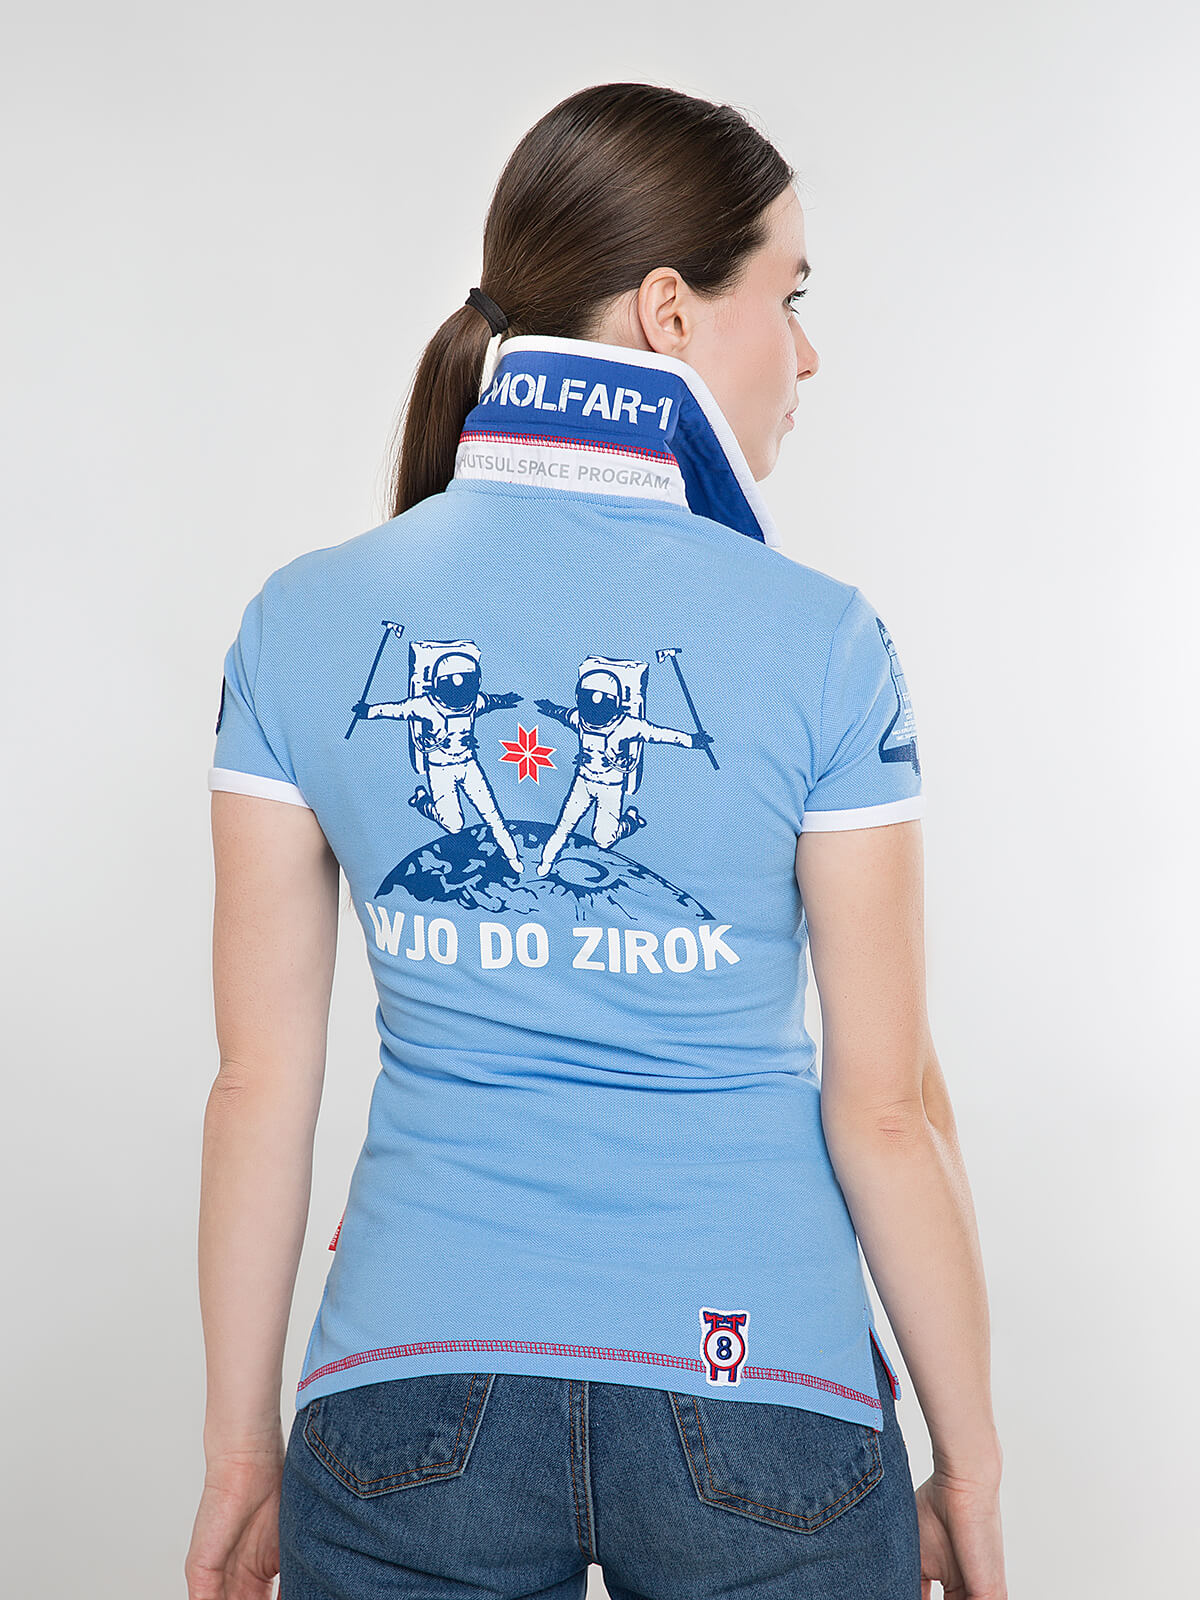 Women's Polo Shirt Molfar. Color sky blue.  Technique of prints applied: embroidery, silkscreen printing.